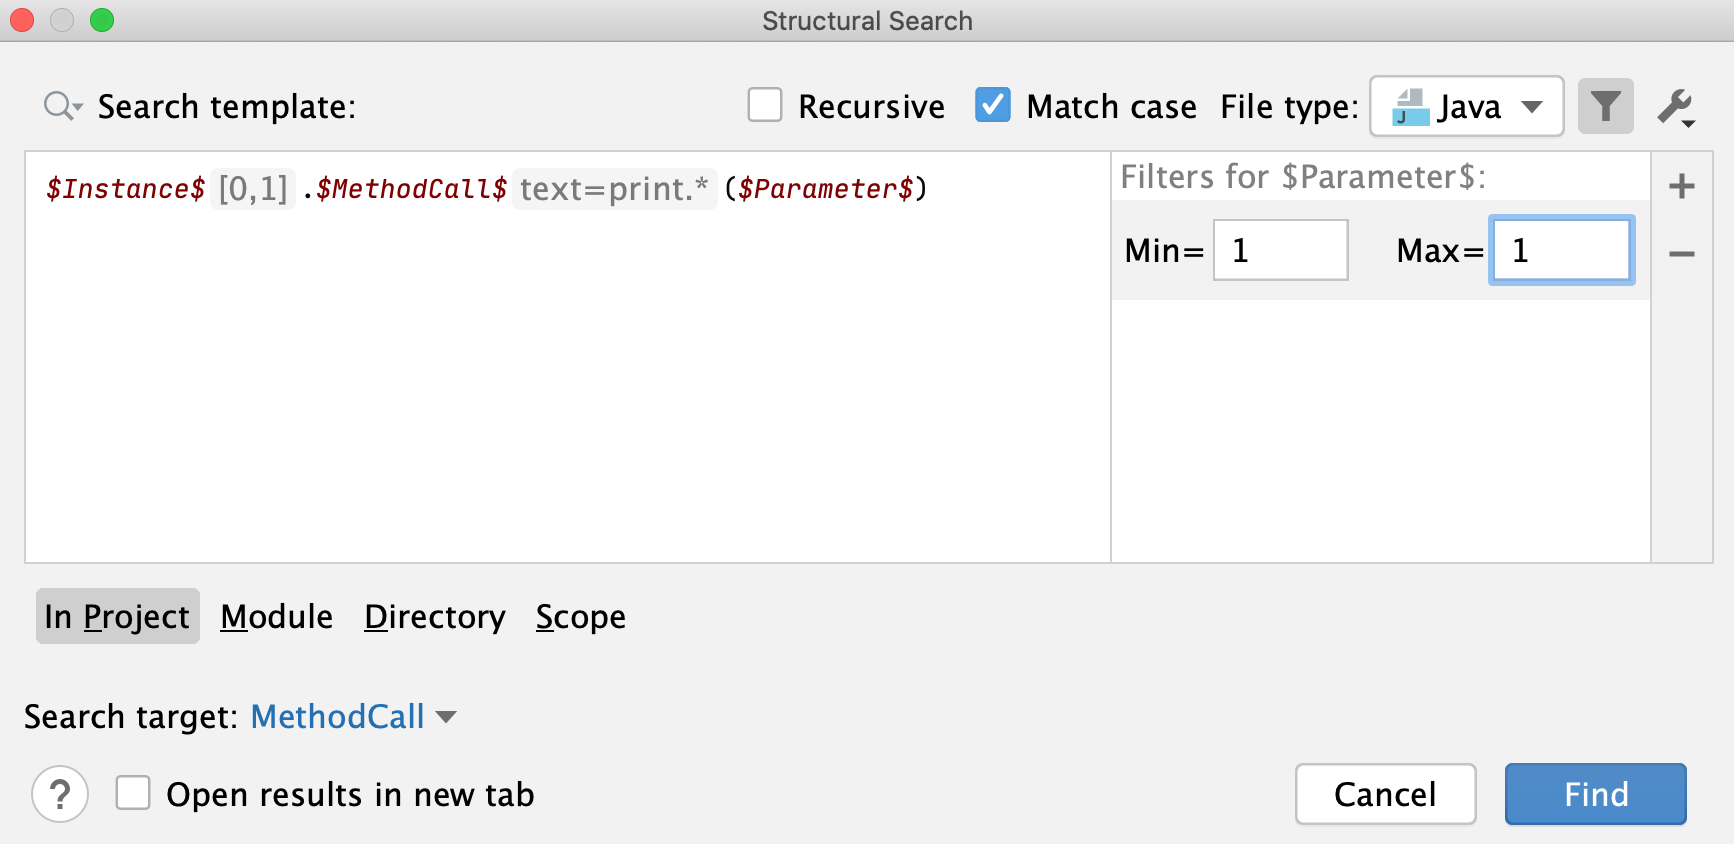 Add the count filter for parameter